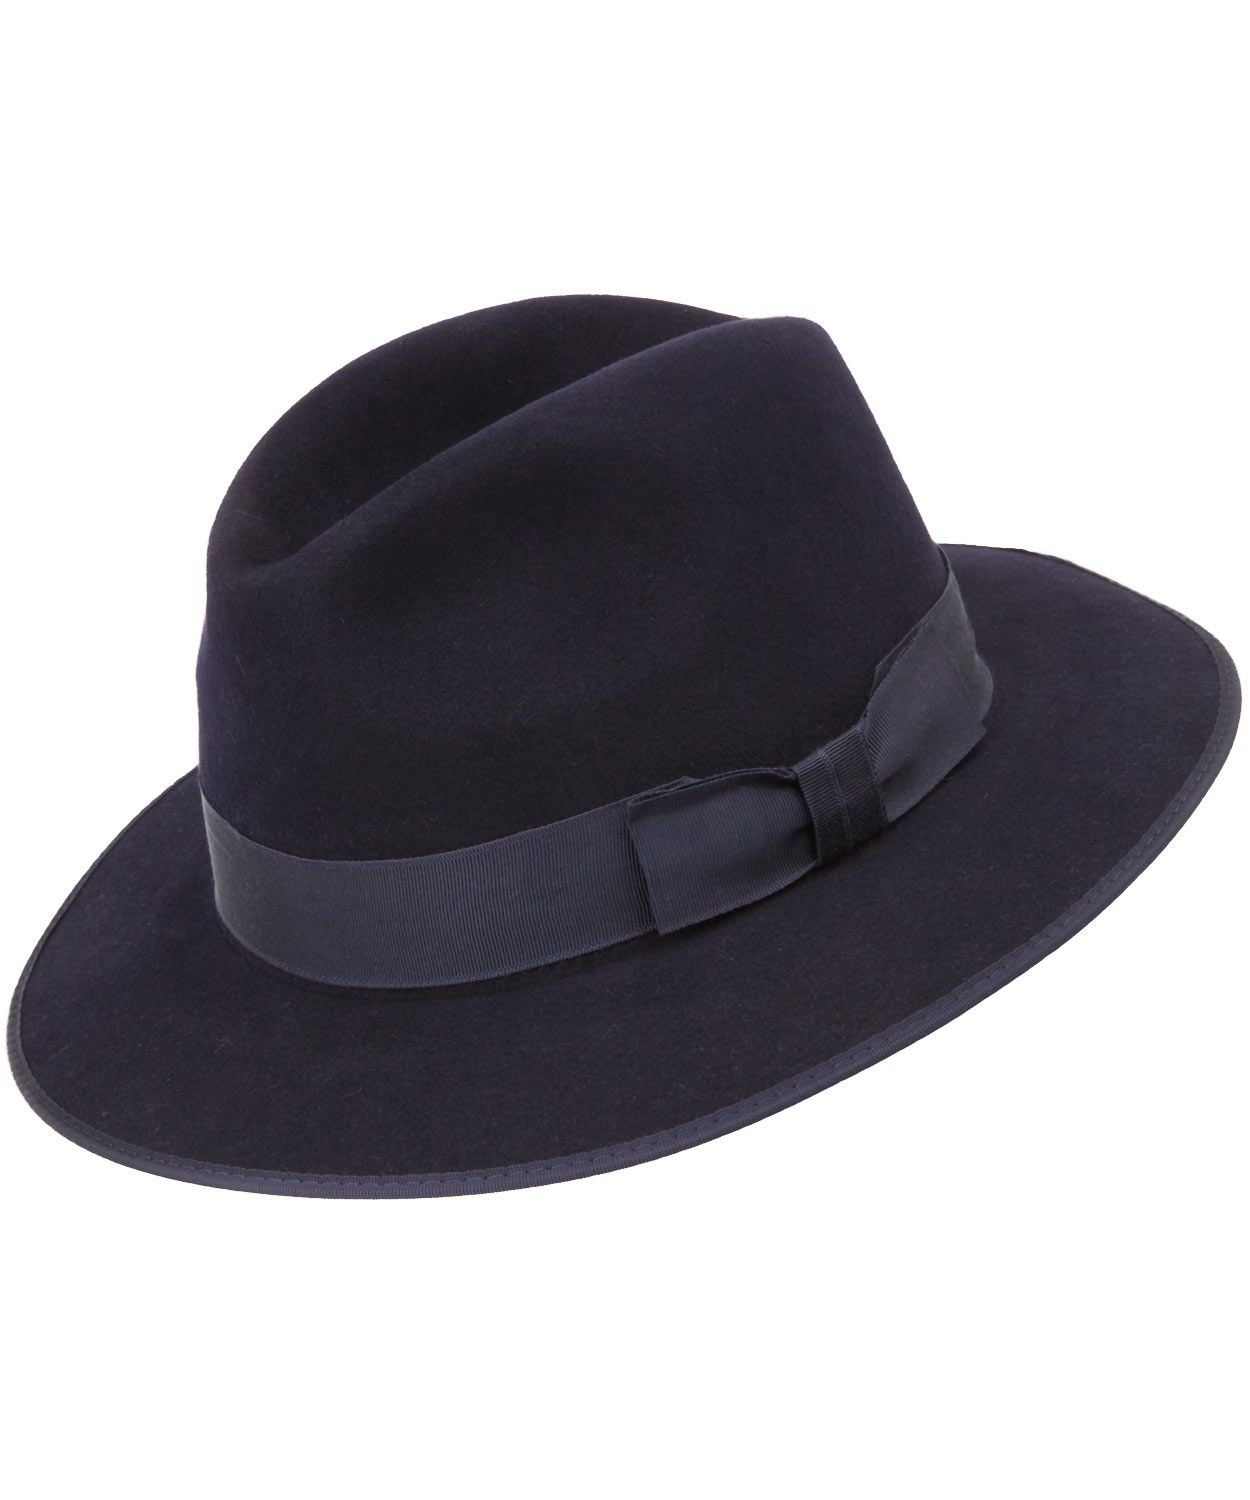 drop brim christys' hat from liberty of london